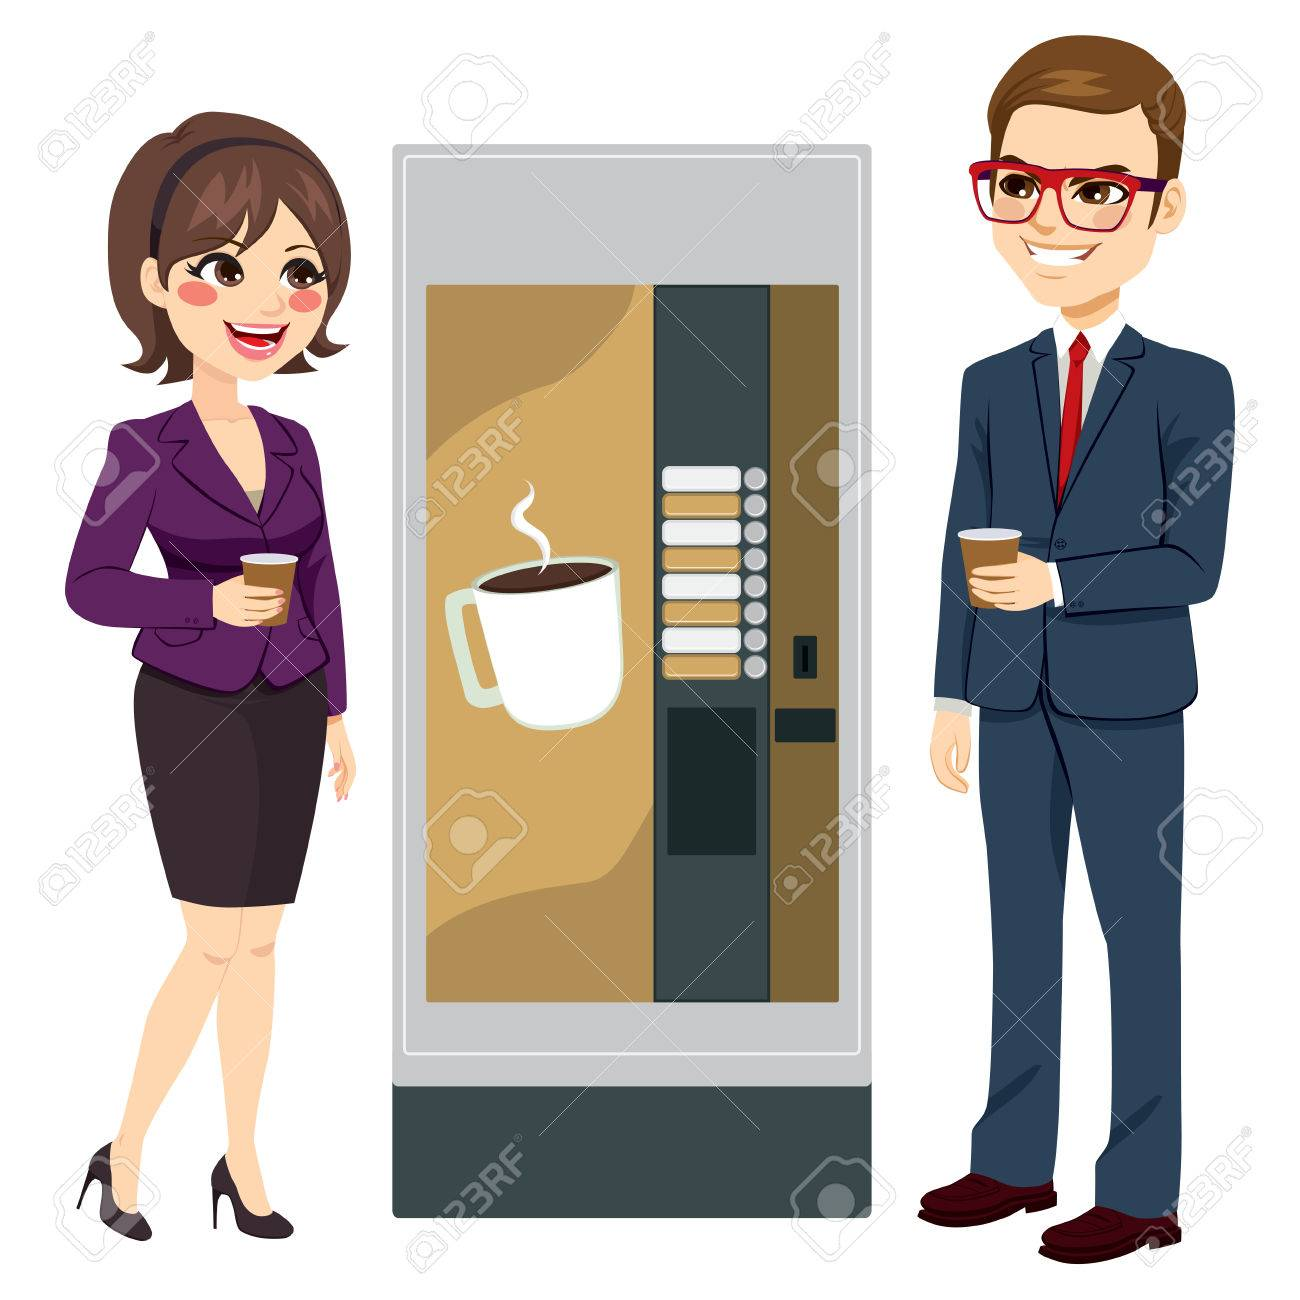 Two workers enjoying coffee standing next to vending machine - 74125760